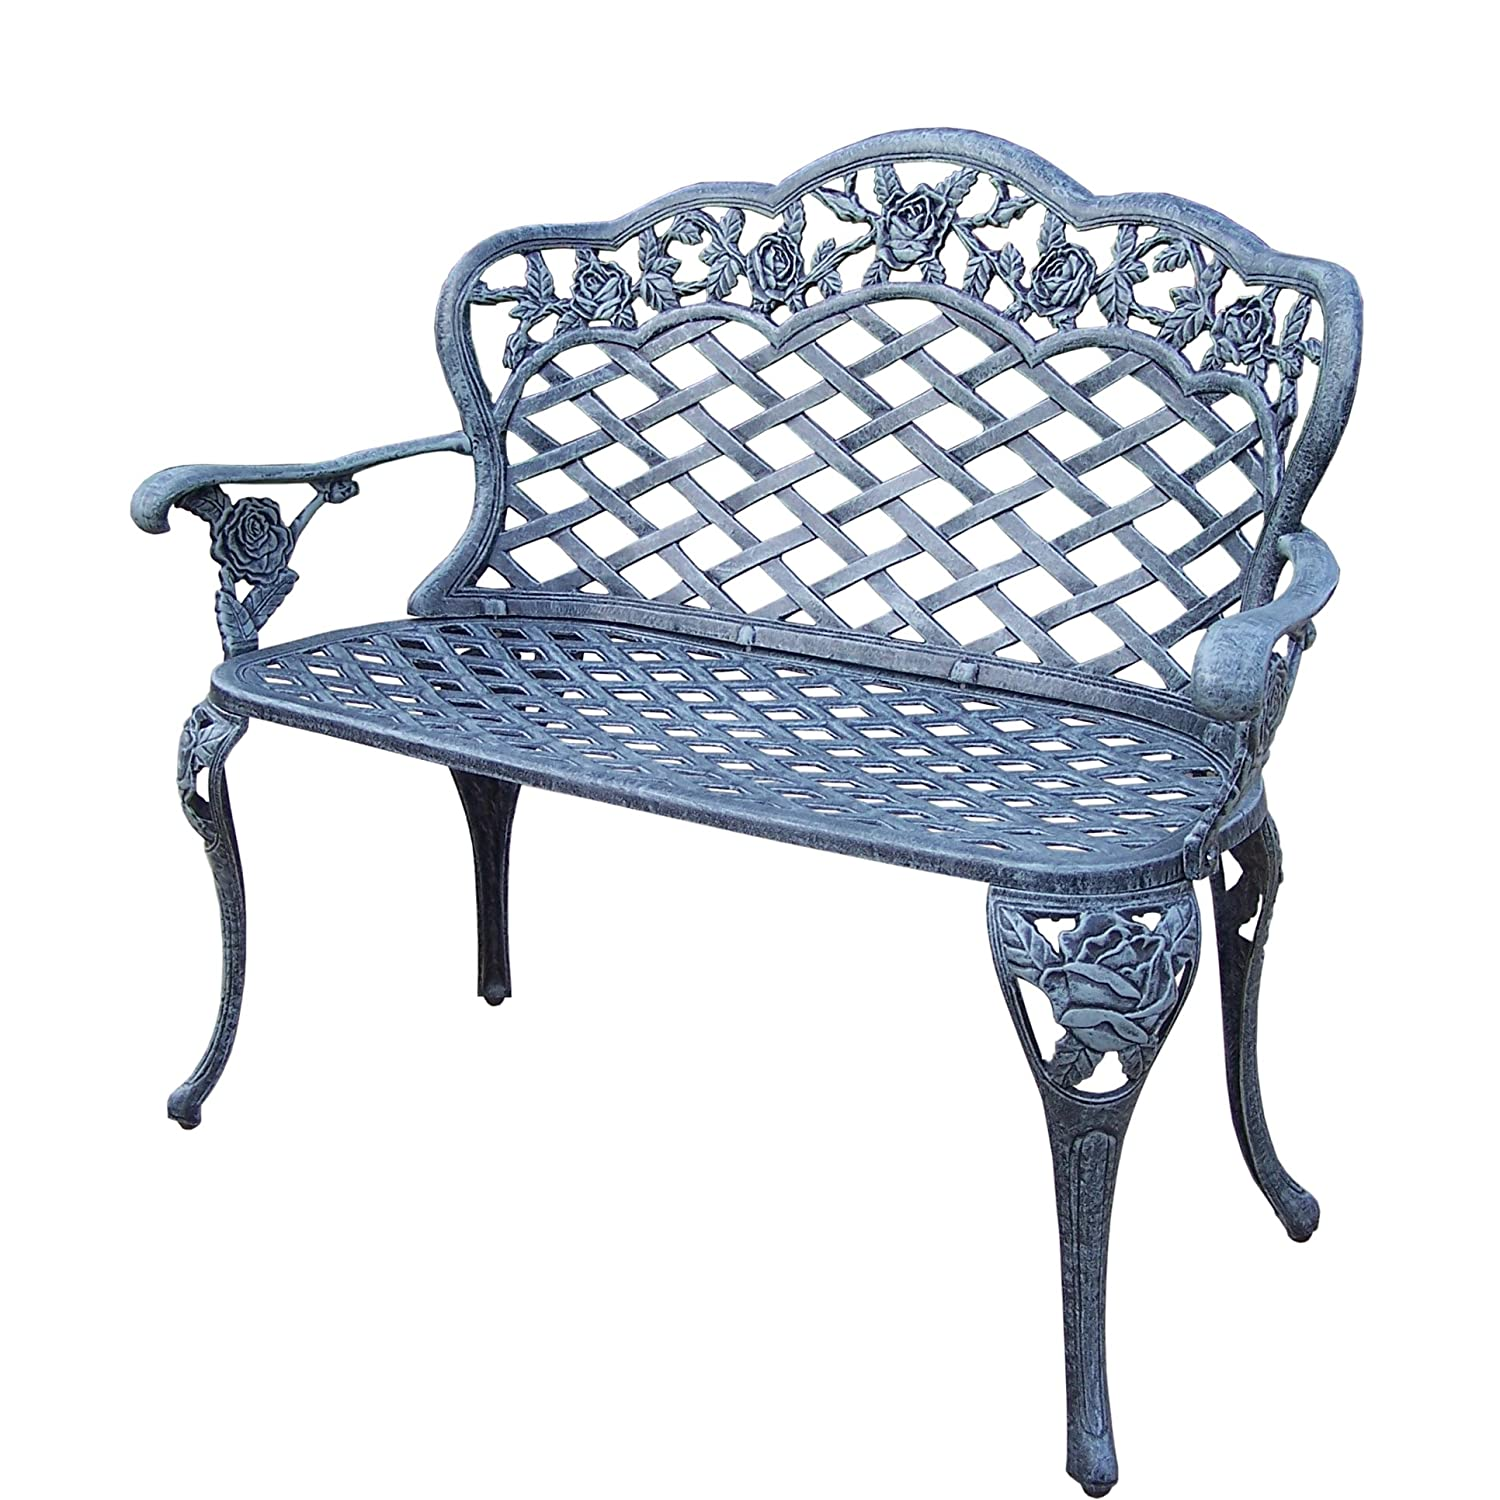 Oakland Living Tea Rose Cast Aluminum Love Seat Bench, Verdi Grey